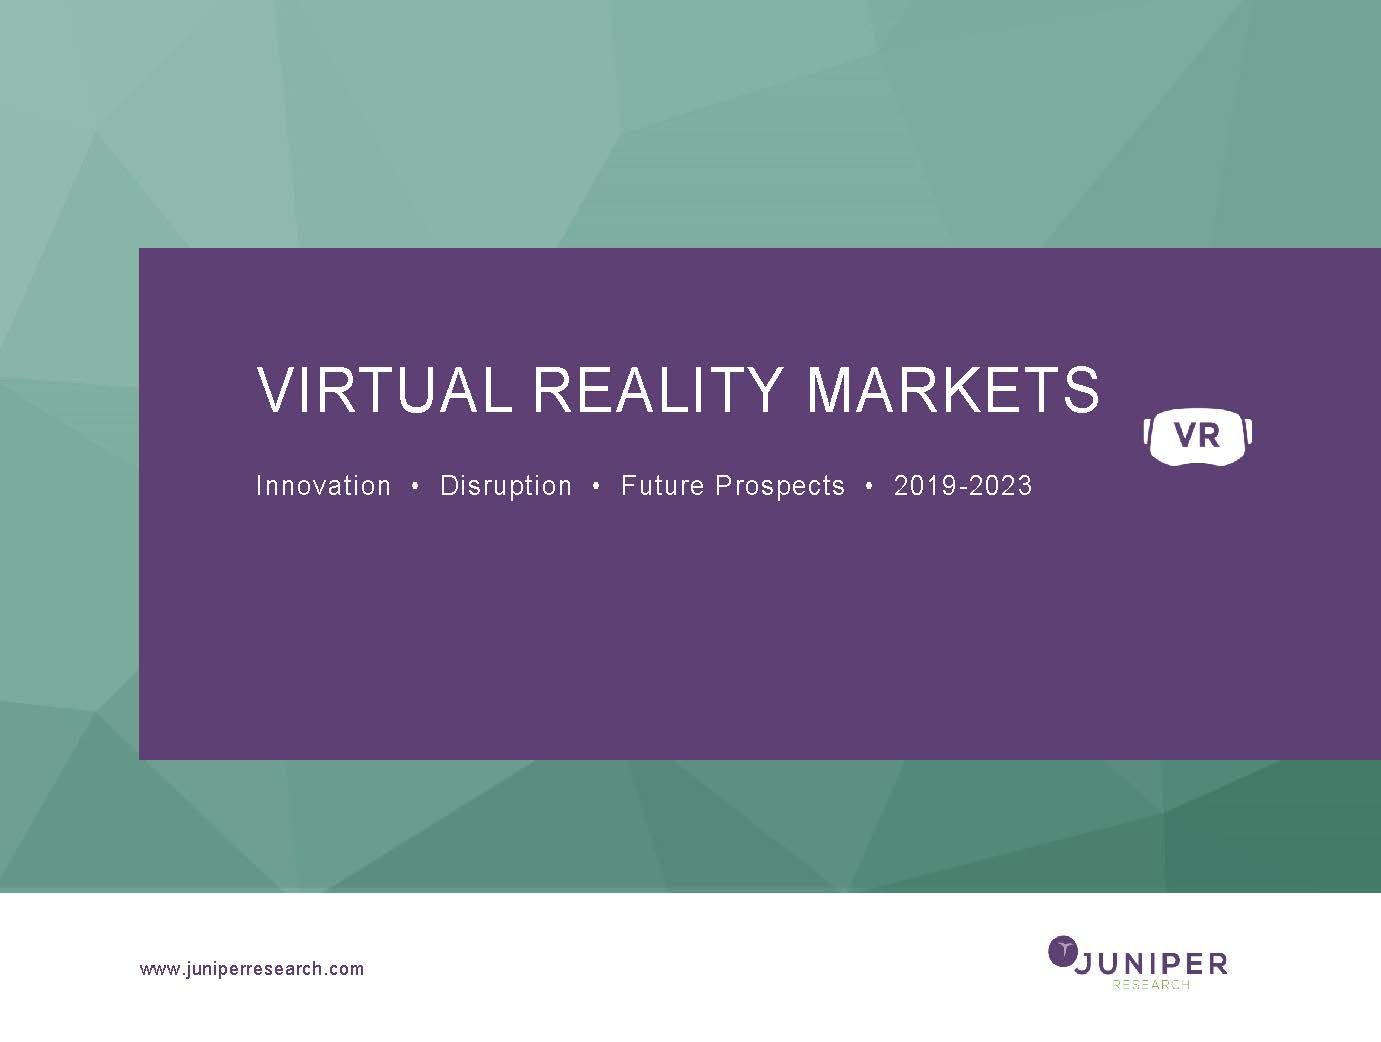 Virtual Reality Markets Research Report | Innovation